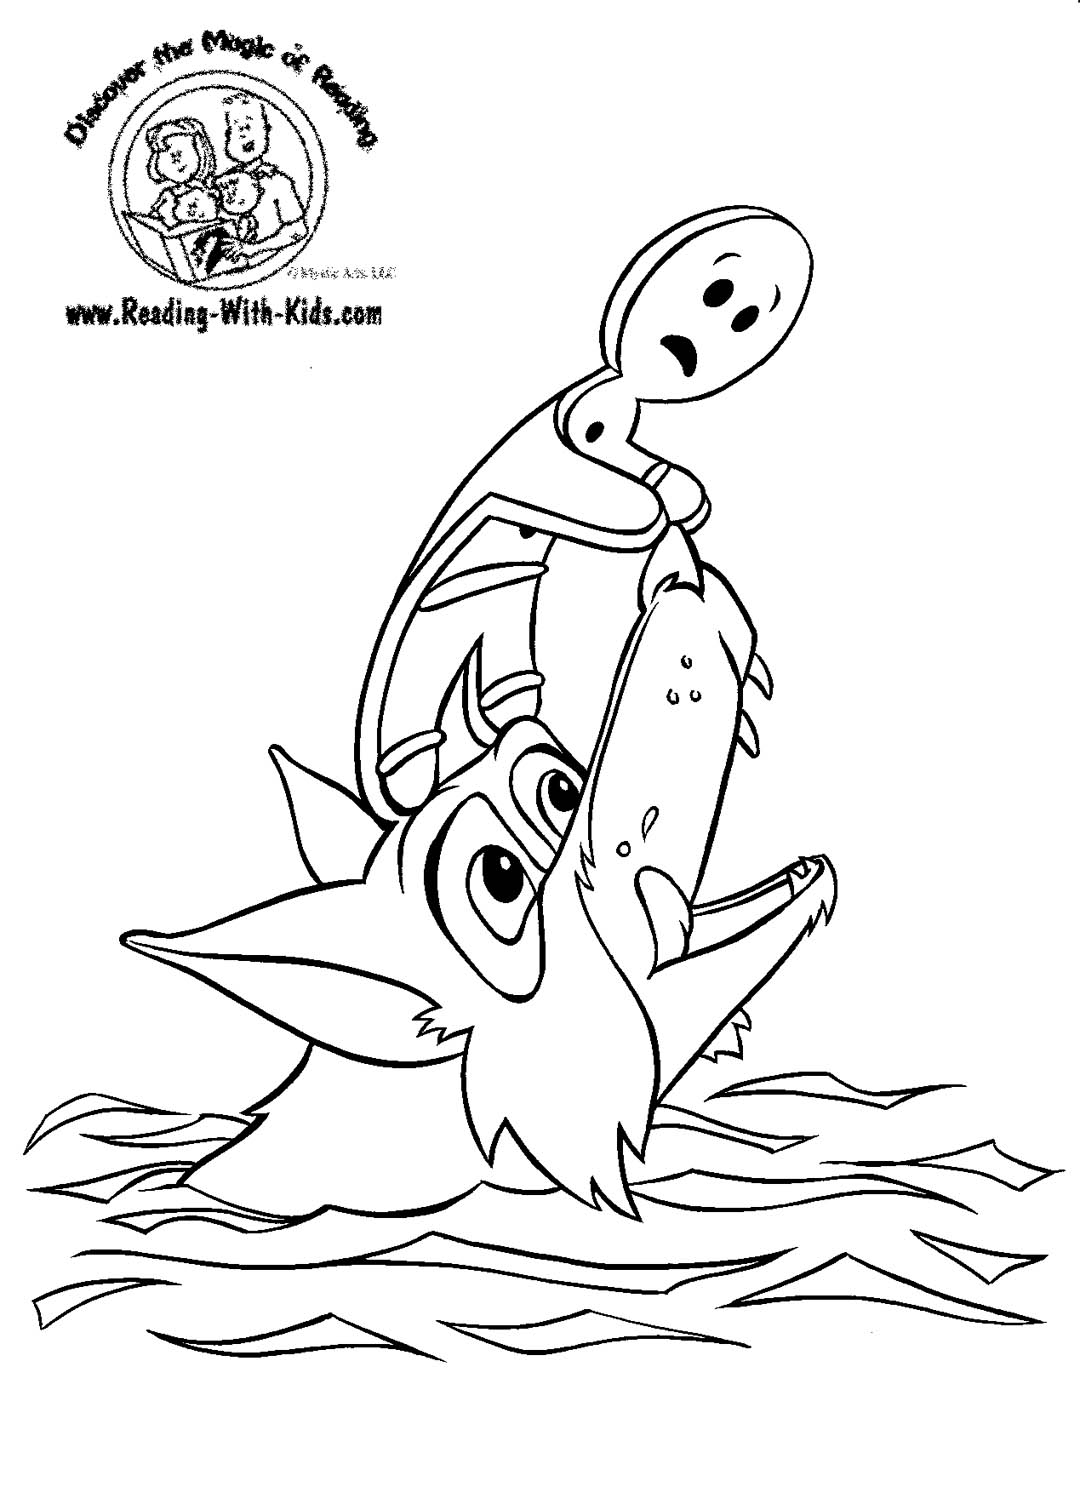 fairy tale coloring book pages - photo#7